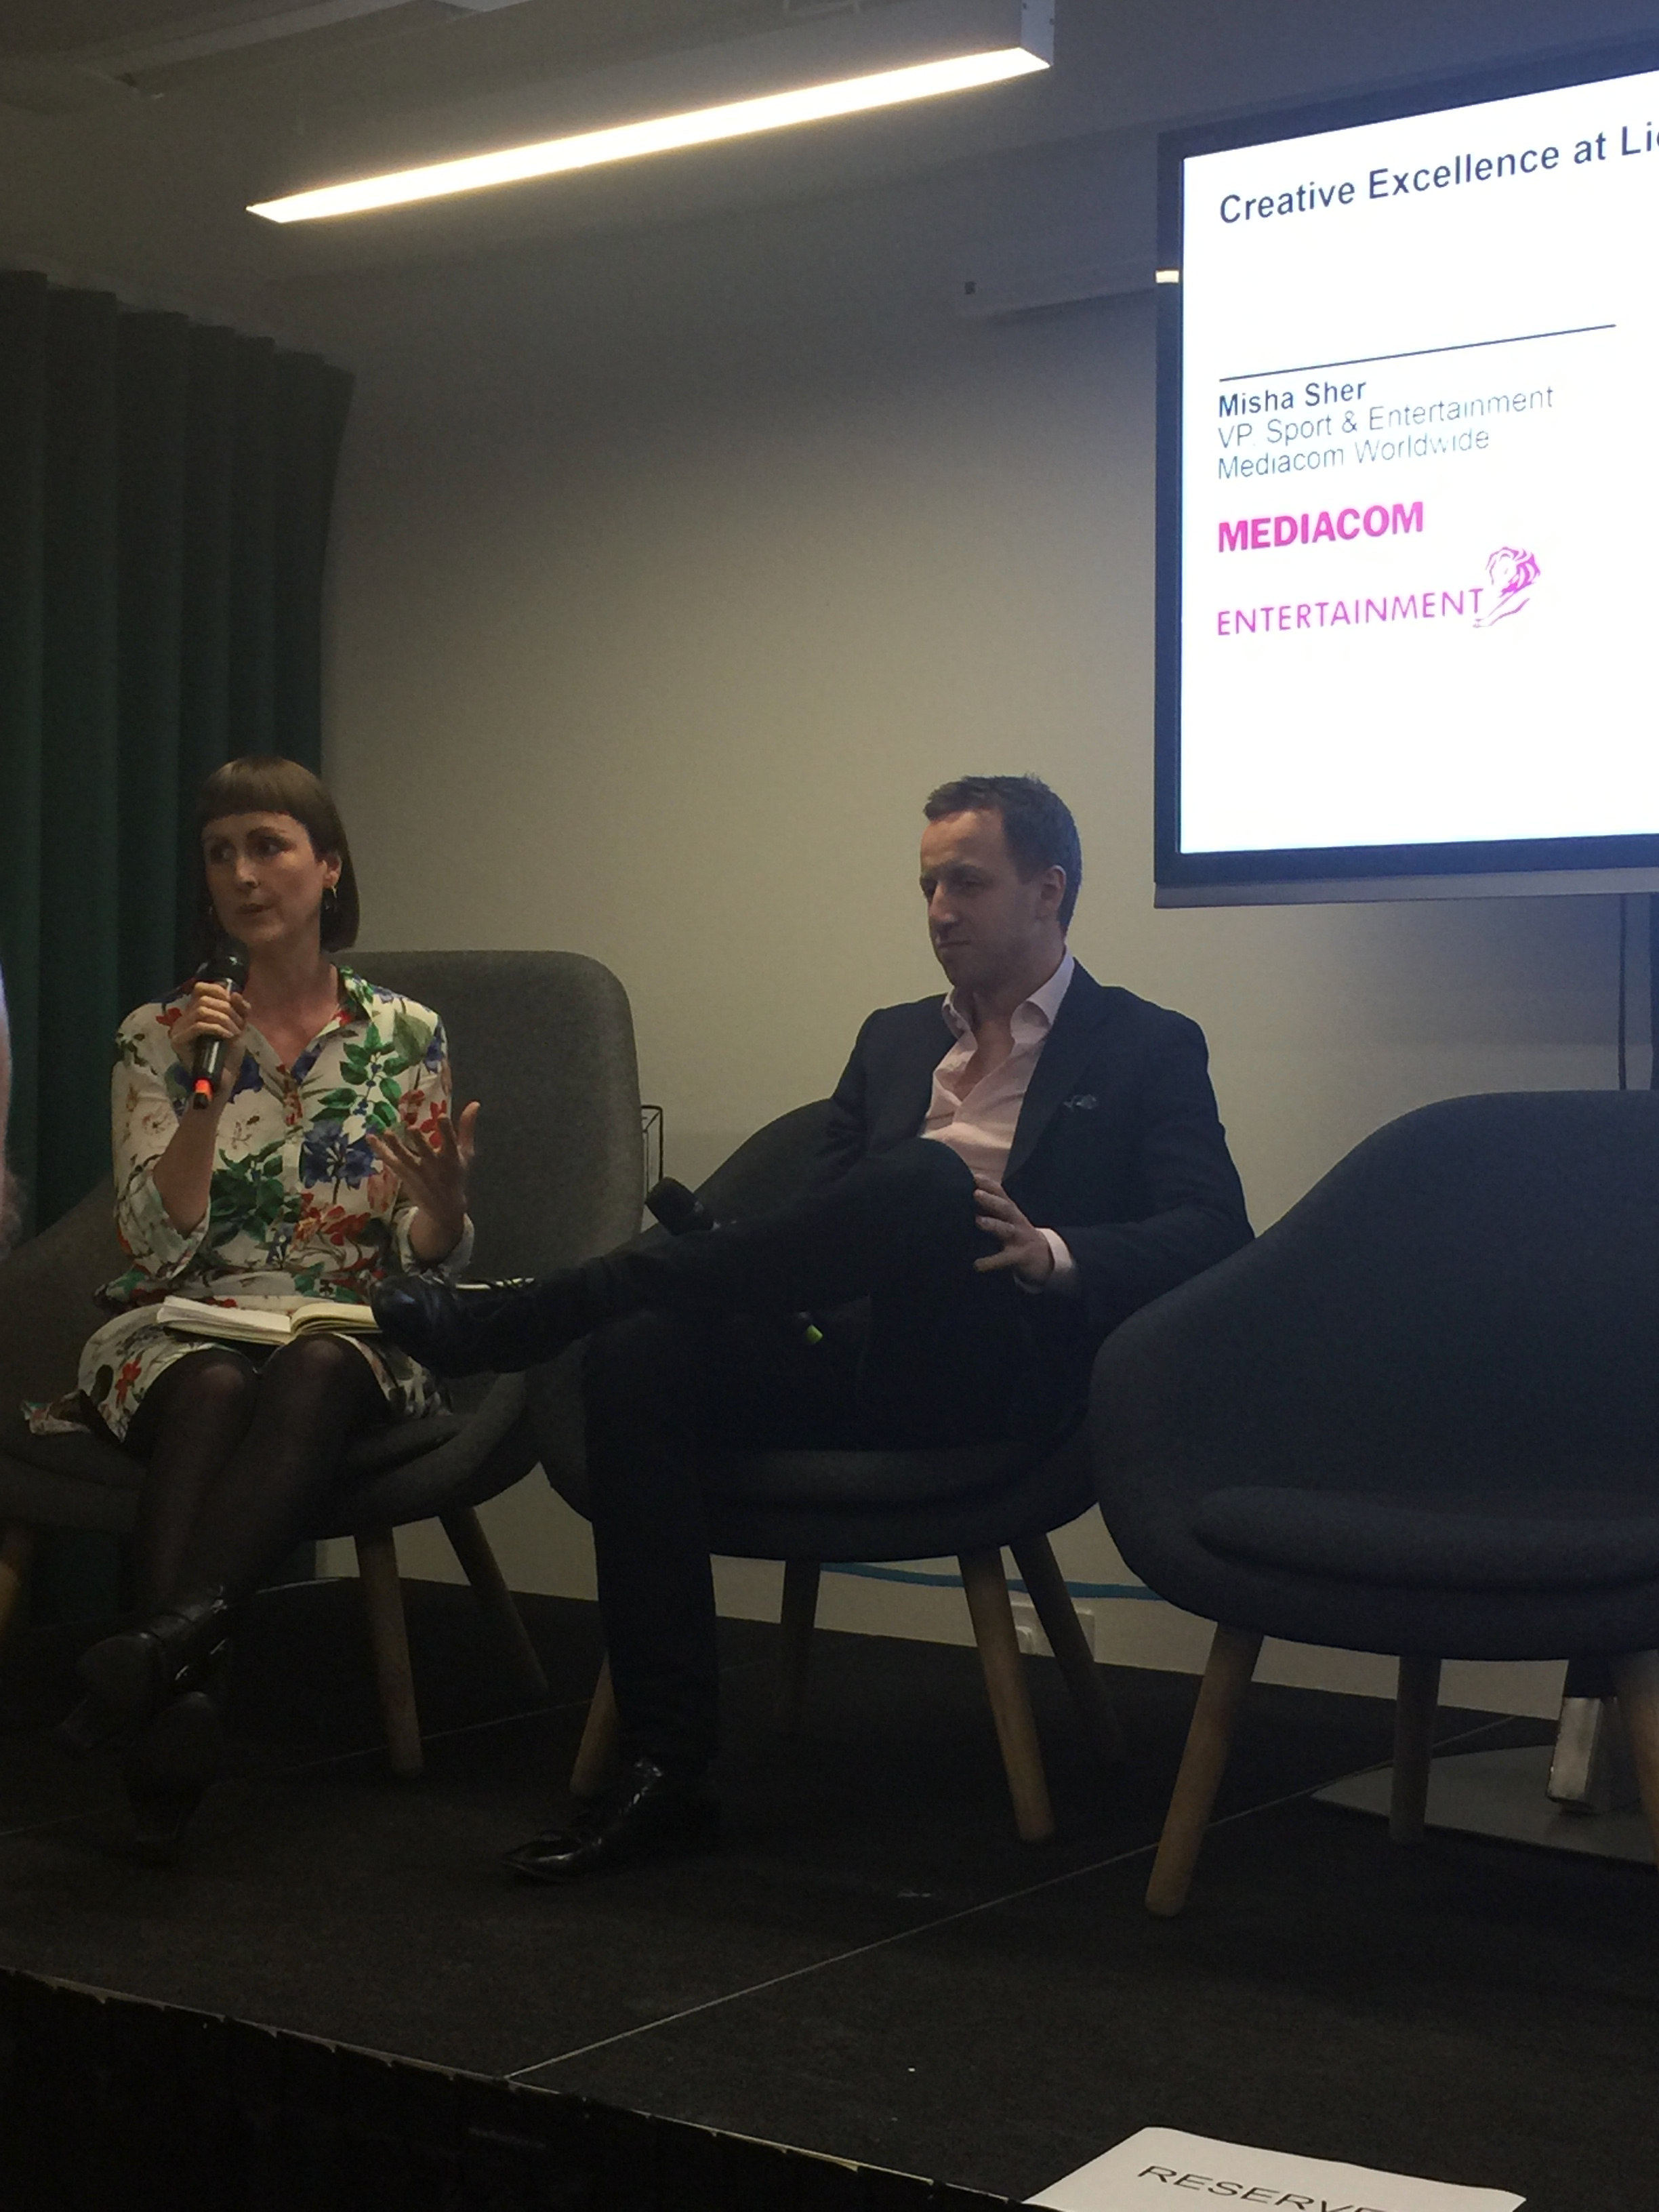 Louise Benson and Misha Sher gave a fascinating insight into awards